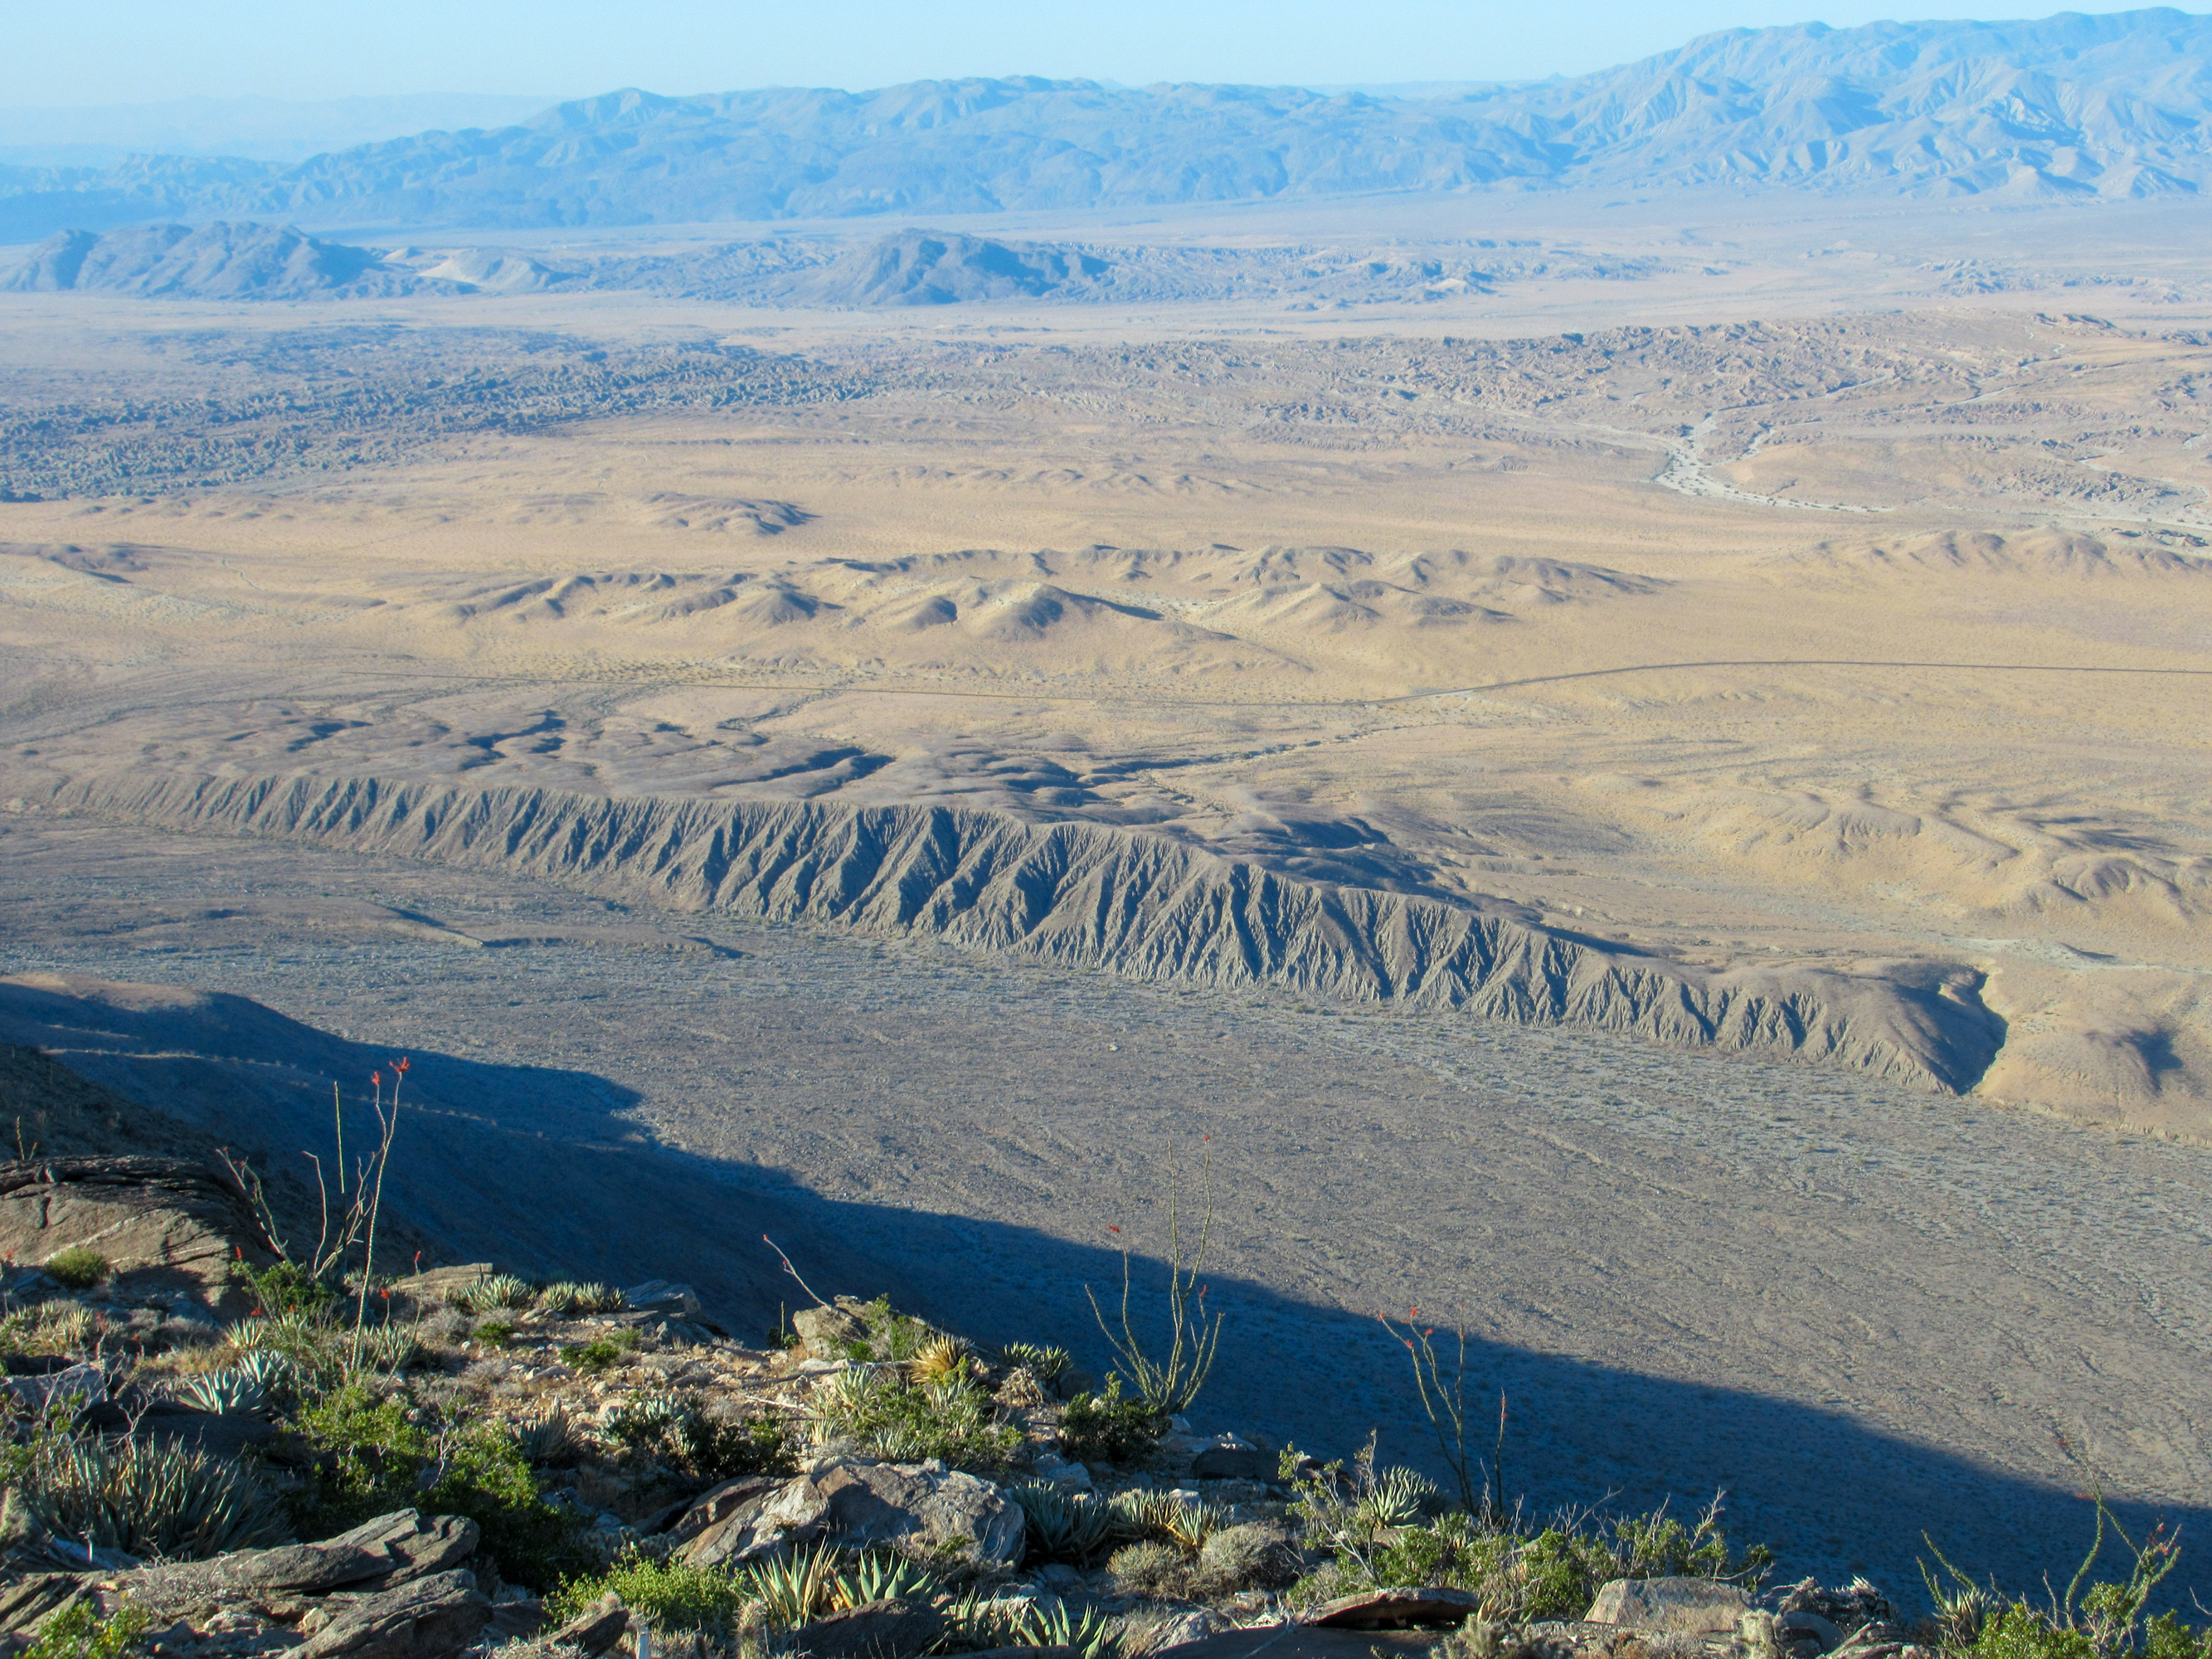 A fault line in the Anza Borrego desert.